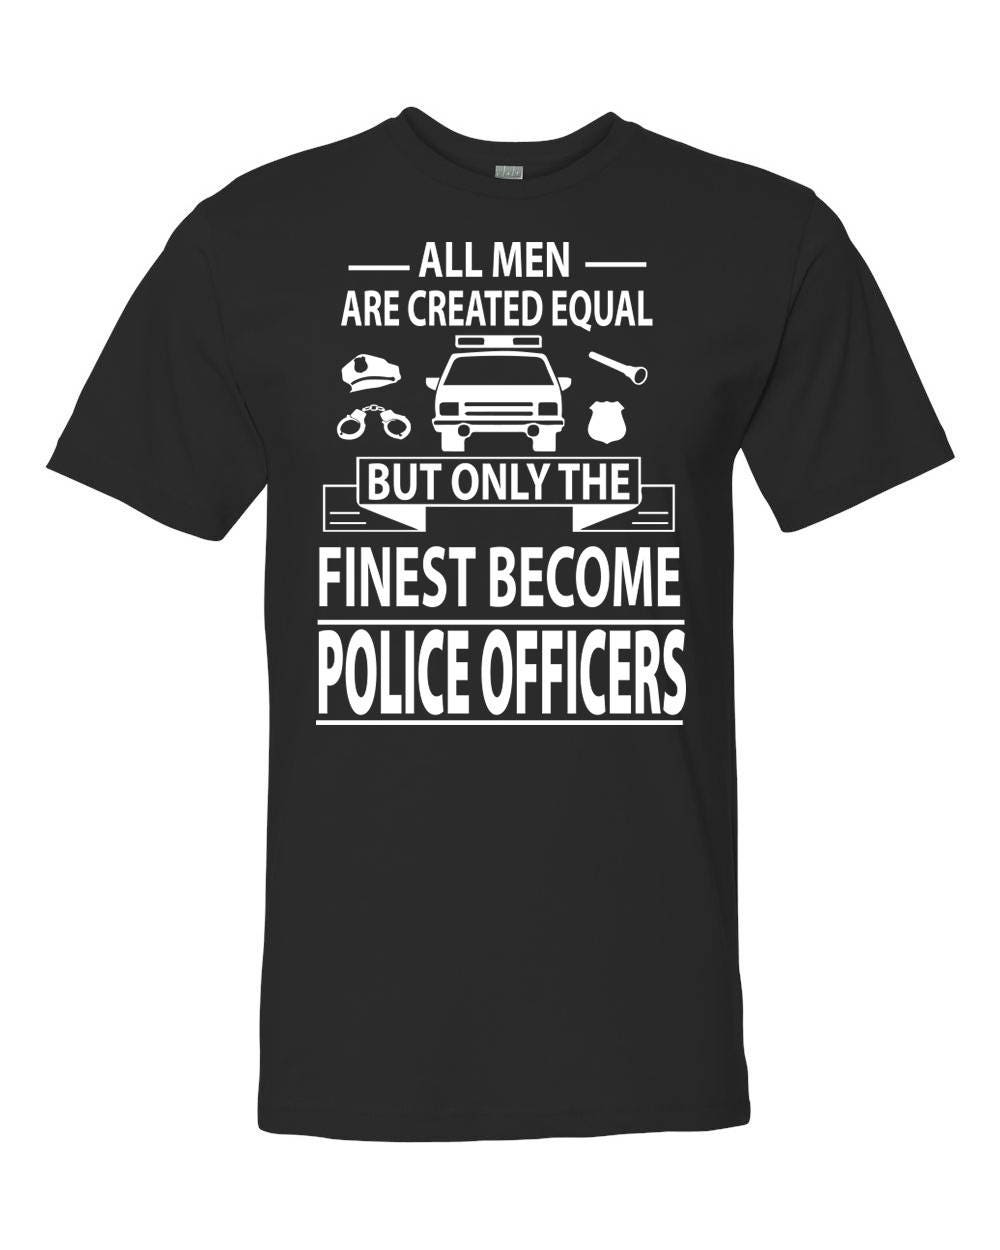 all men are not created equal Rebirth of the thief who roamed the world - chapter 47 - not all men are created equal.